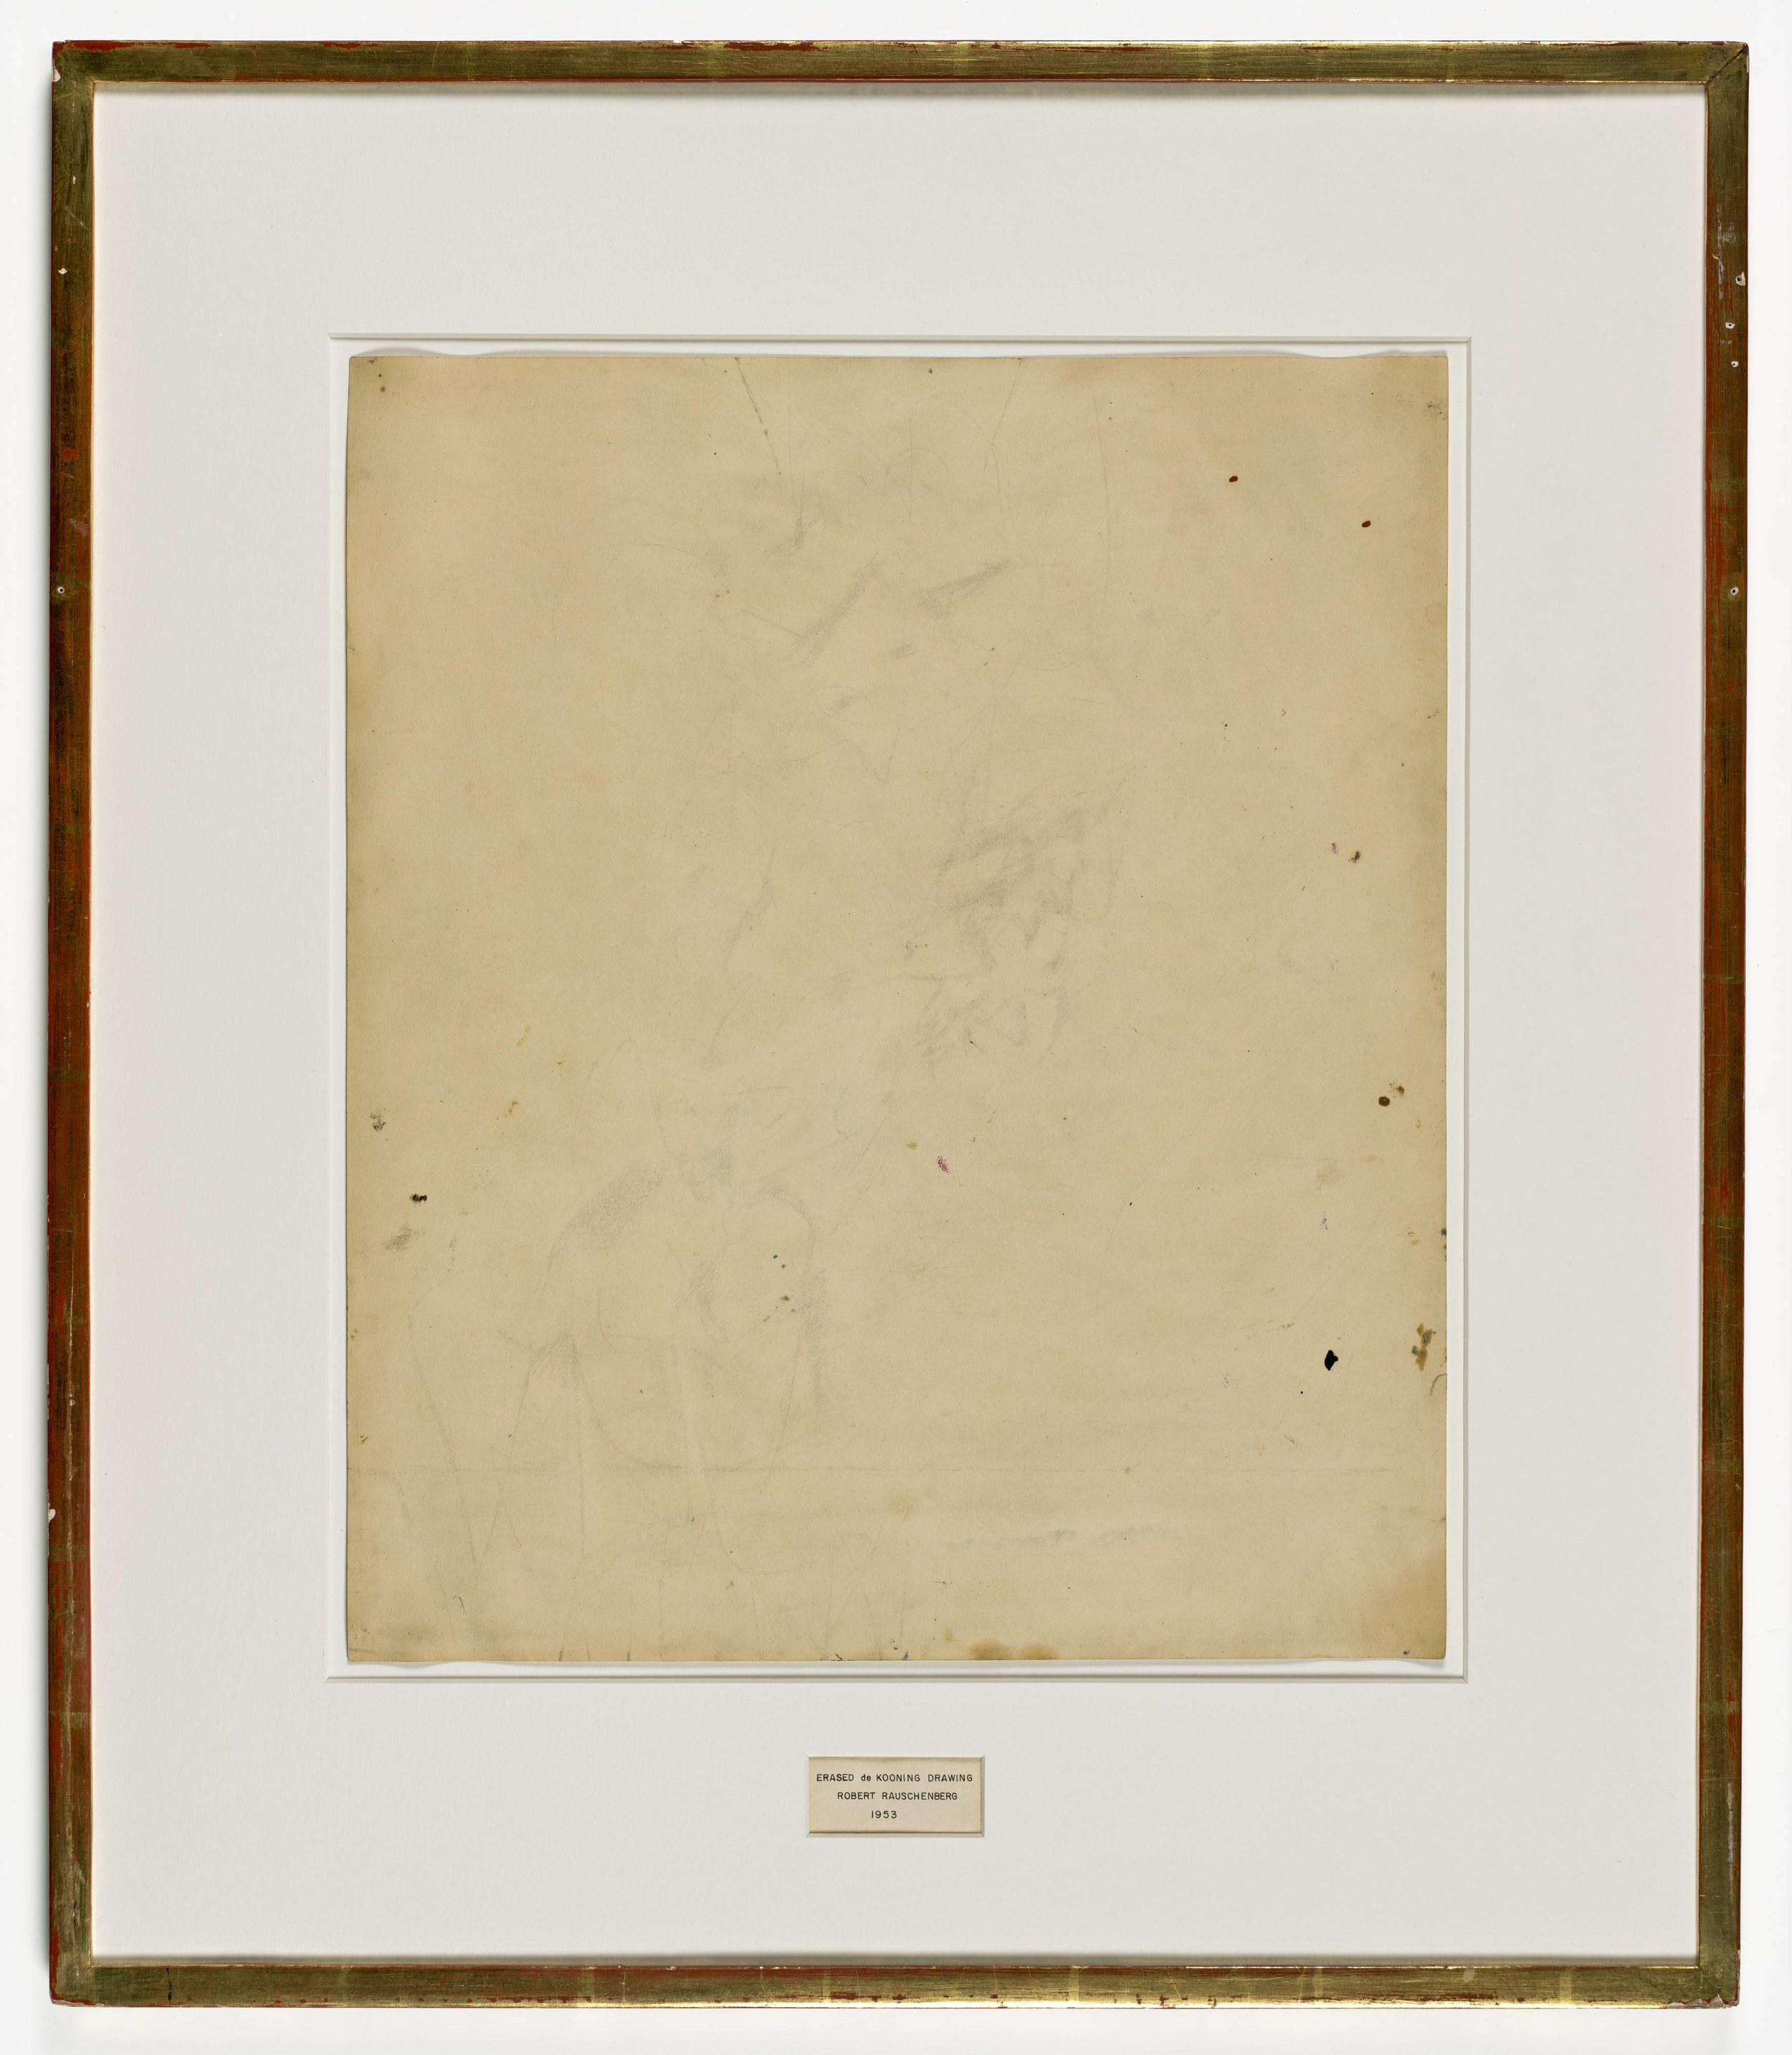 Robert Rauschenberg,  Erased de Kooning Drawing , 1998, traces of drawing media on paper with label and gilded frame. Collection of SFMoMA